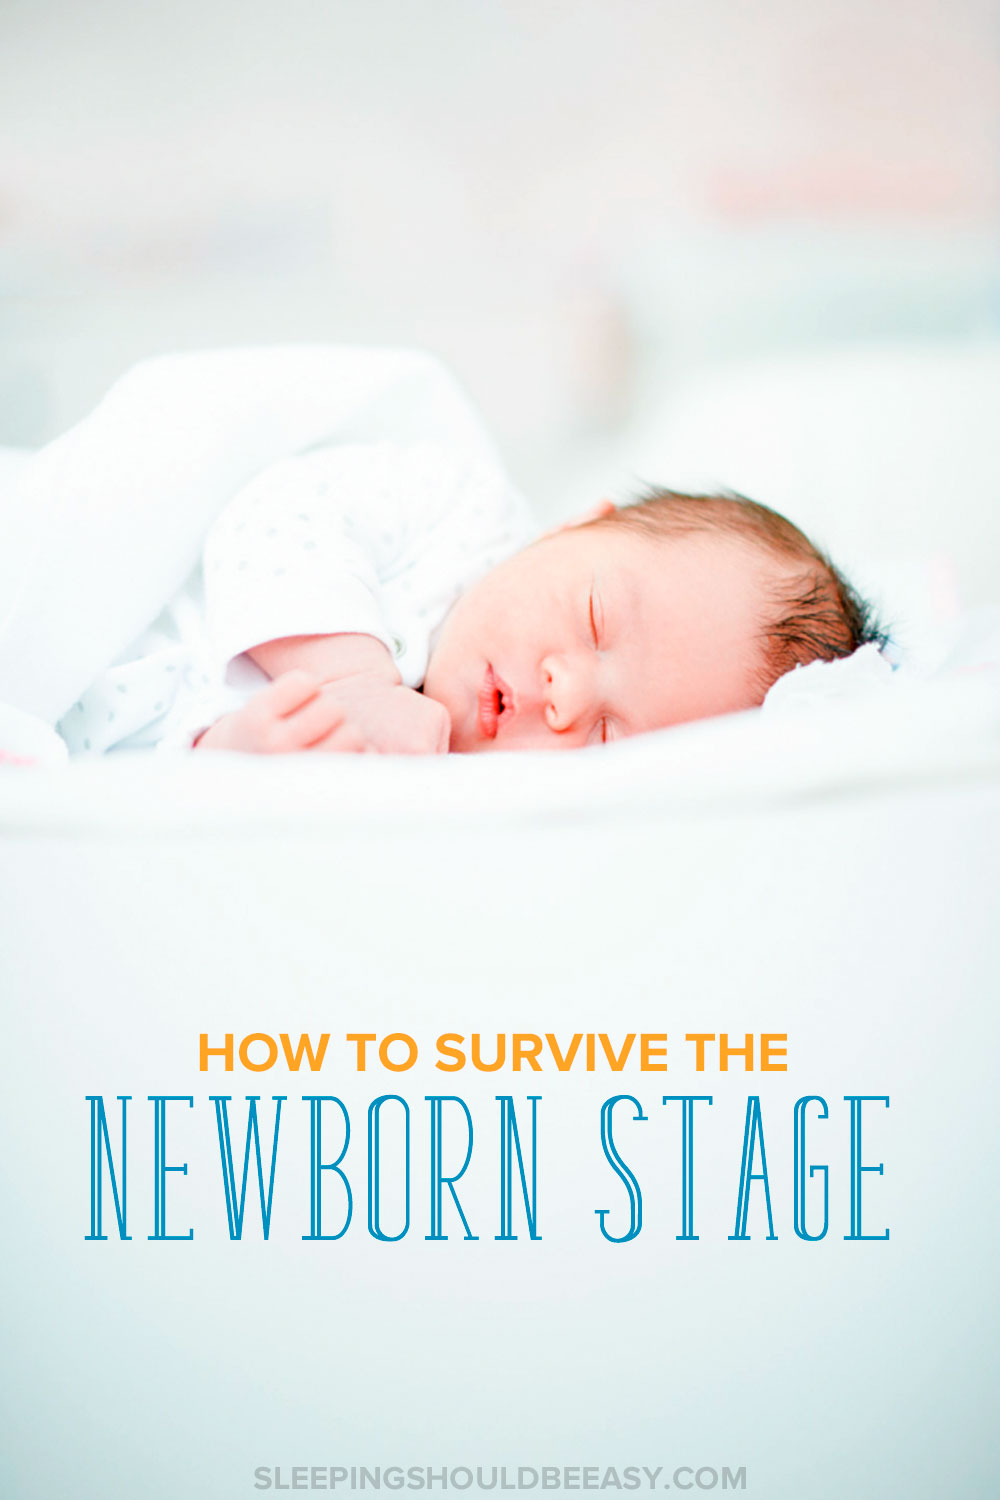 The newborn stage is hard. You're sleep deprived and dealing with a baby 24/7. Here are tips on how to survive the newborn stage and sleep deprivation.